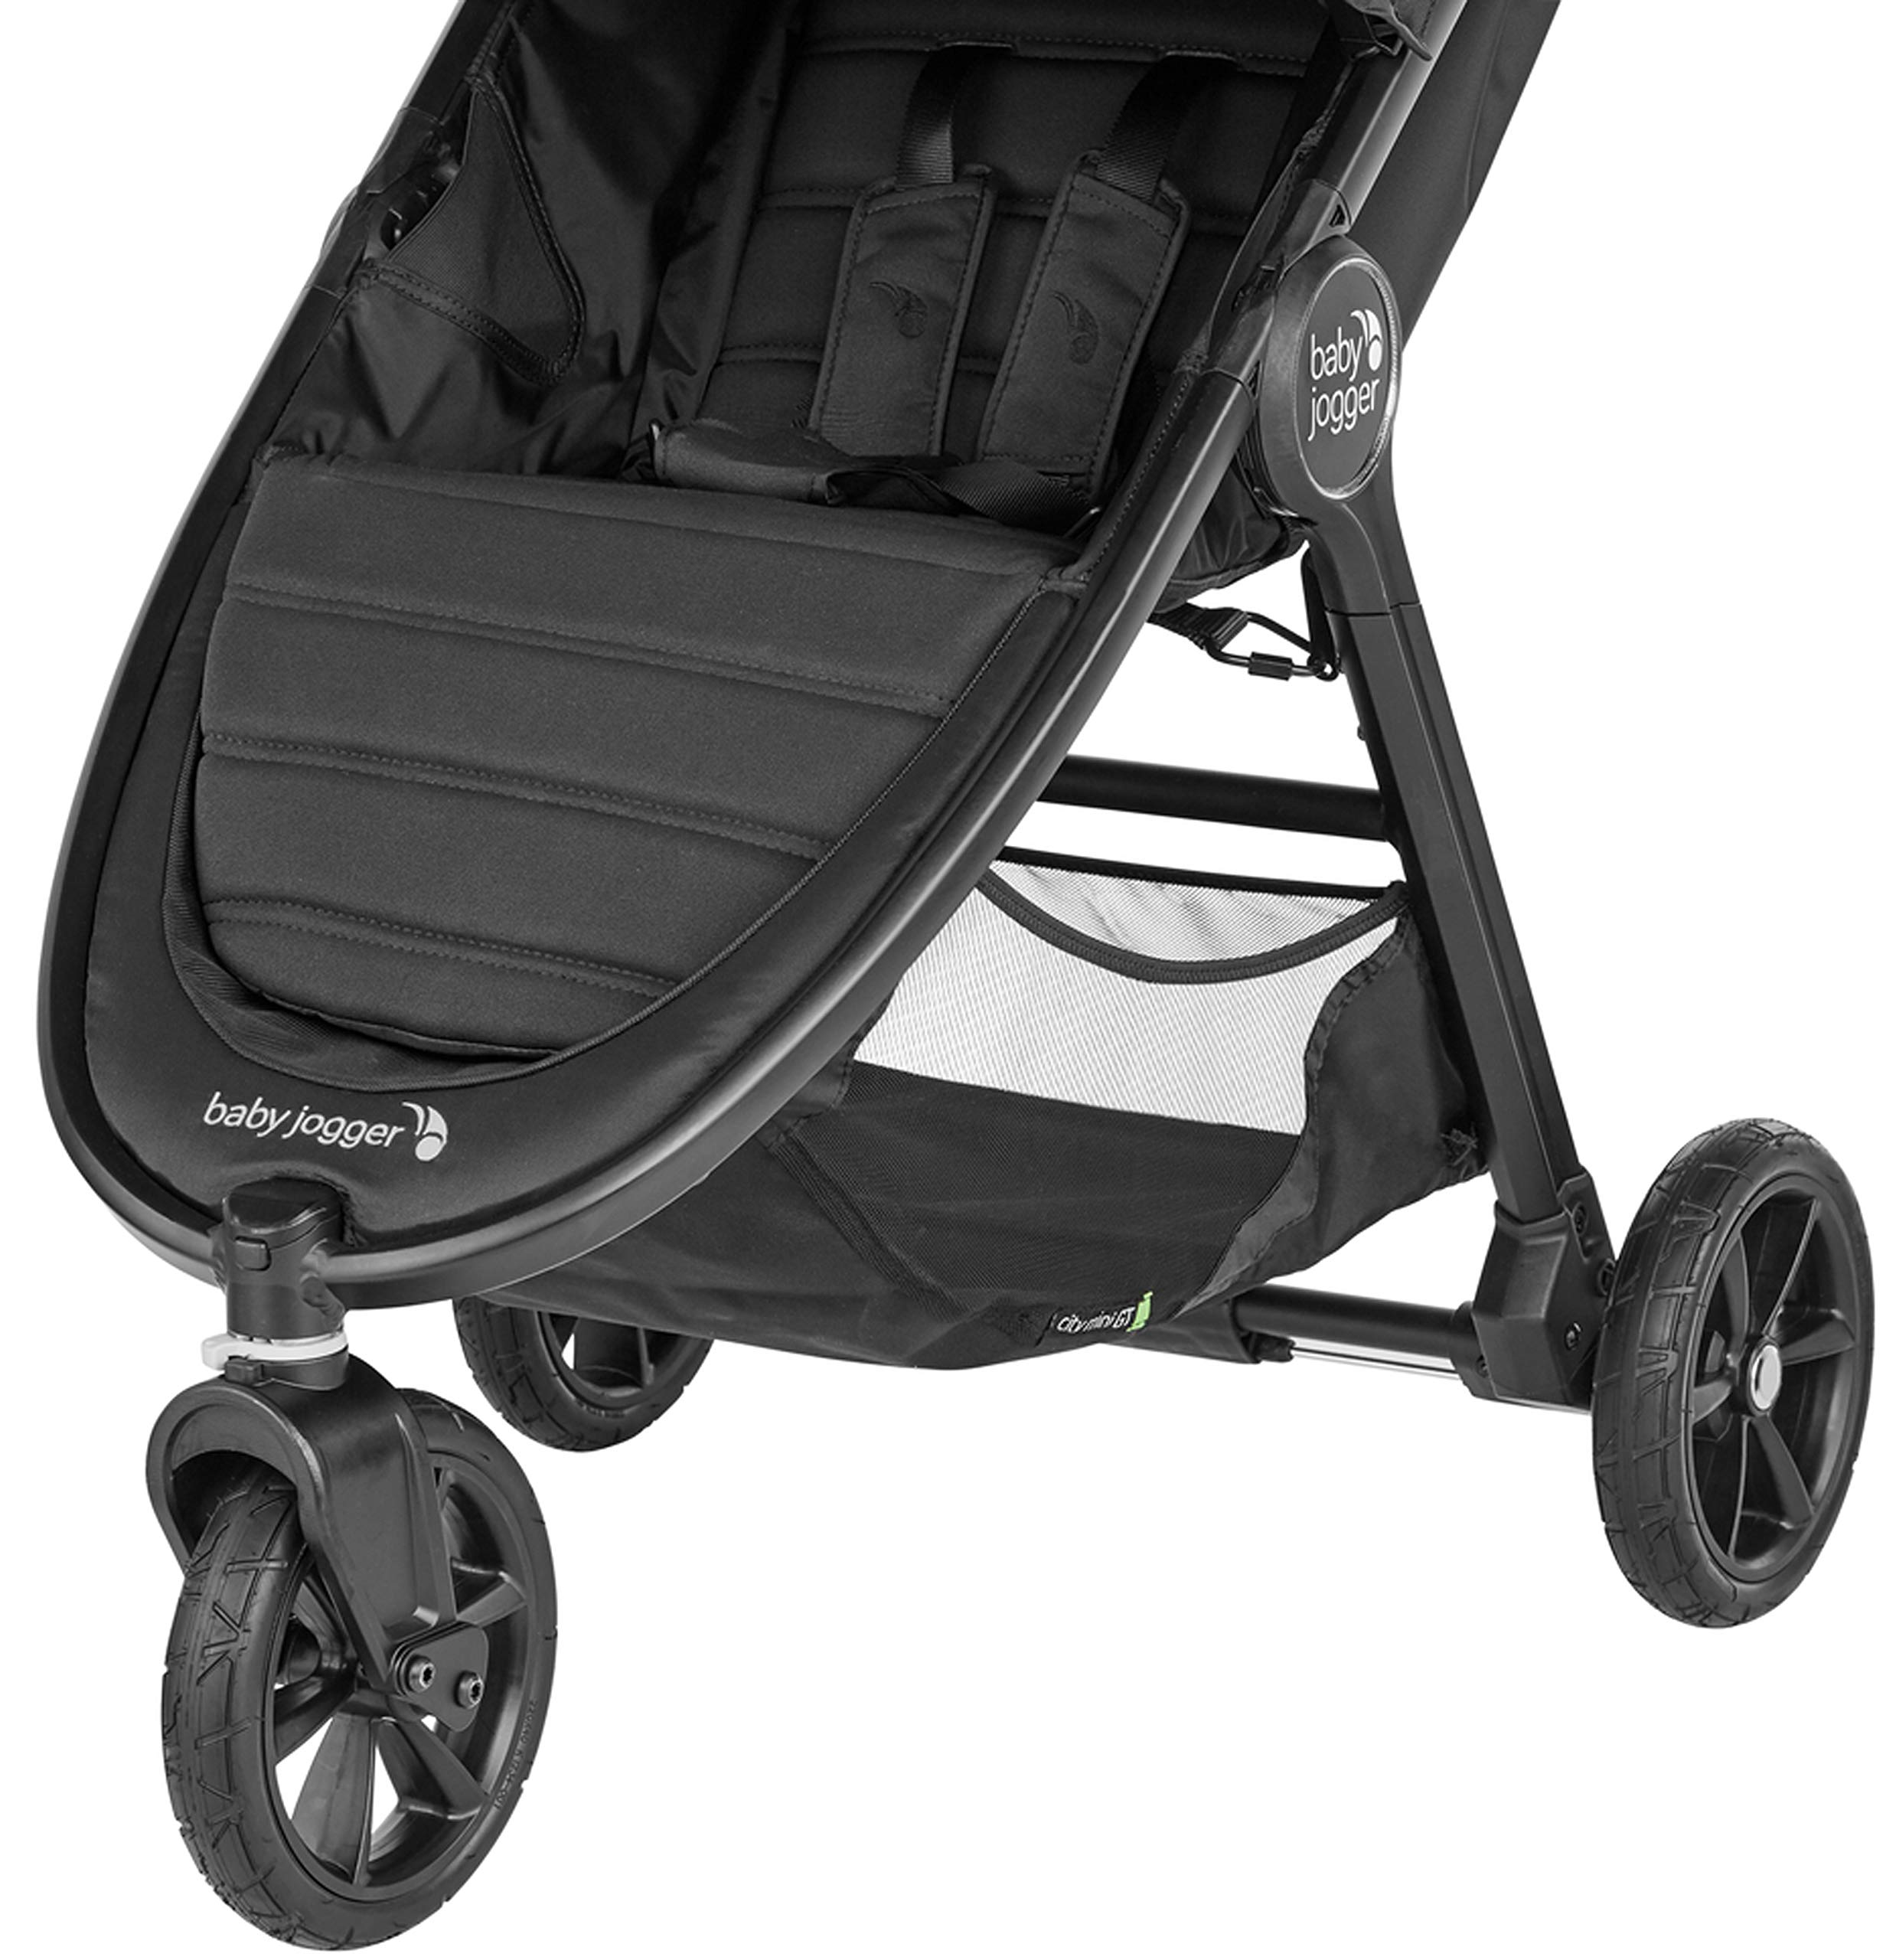 baby jogger City Mini GT2 Single Stroller Jet Baby Jogger The baby jogger city mini GT2 has an all new design, with signature one-hand compact fold, has forever air rubber tyres and all wheel suspension providing uncompromised agility on any terrain Lift a strap with one hand and the city mini GT2, folds itself: simply and compactly. The auto-lock will lock the fold for transportation or storage The seat, with an adjustable calf support and near-flat recline, holds a child weighing up to 22kg and includes a 5-point stroller harness to keep them comfortable and safely secured 2